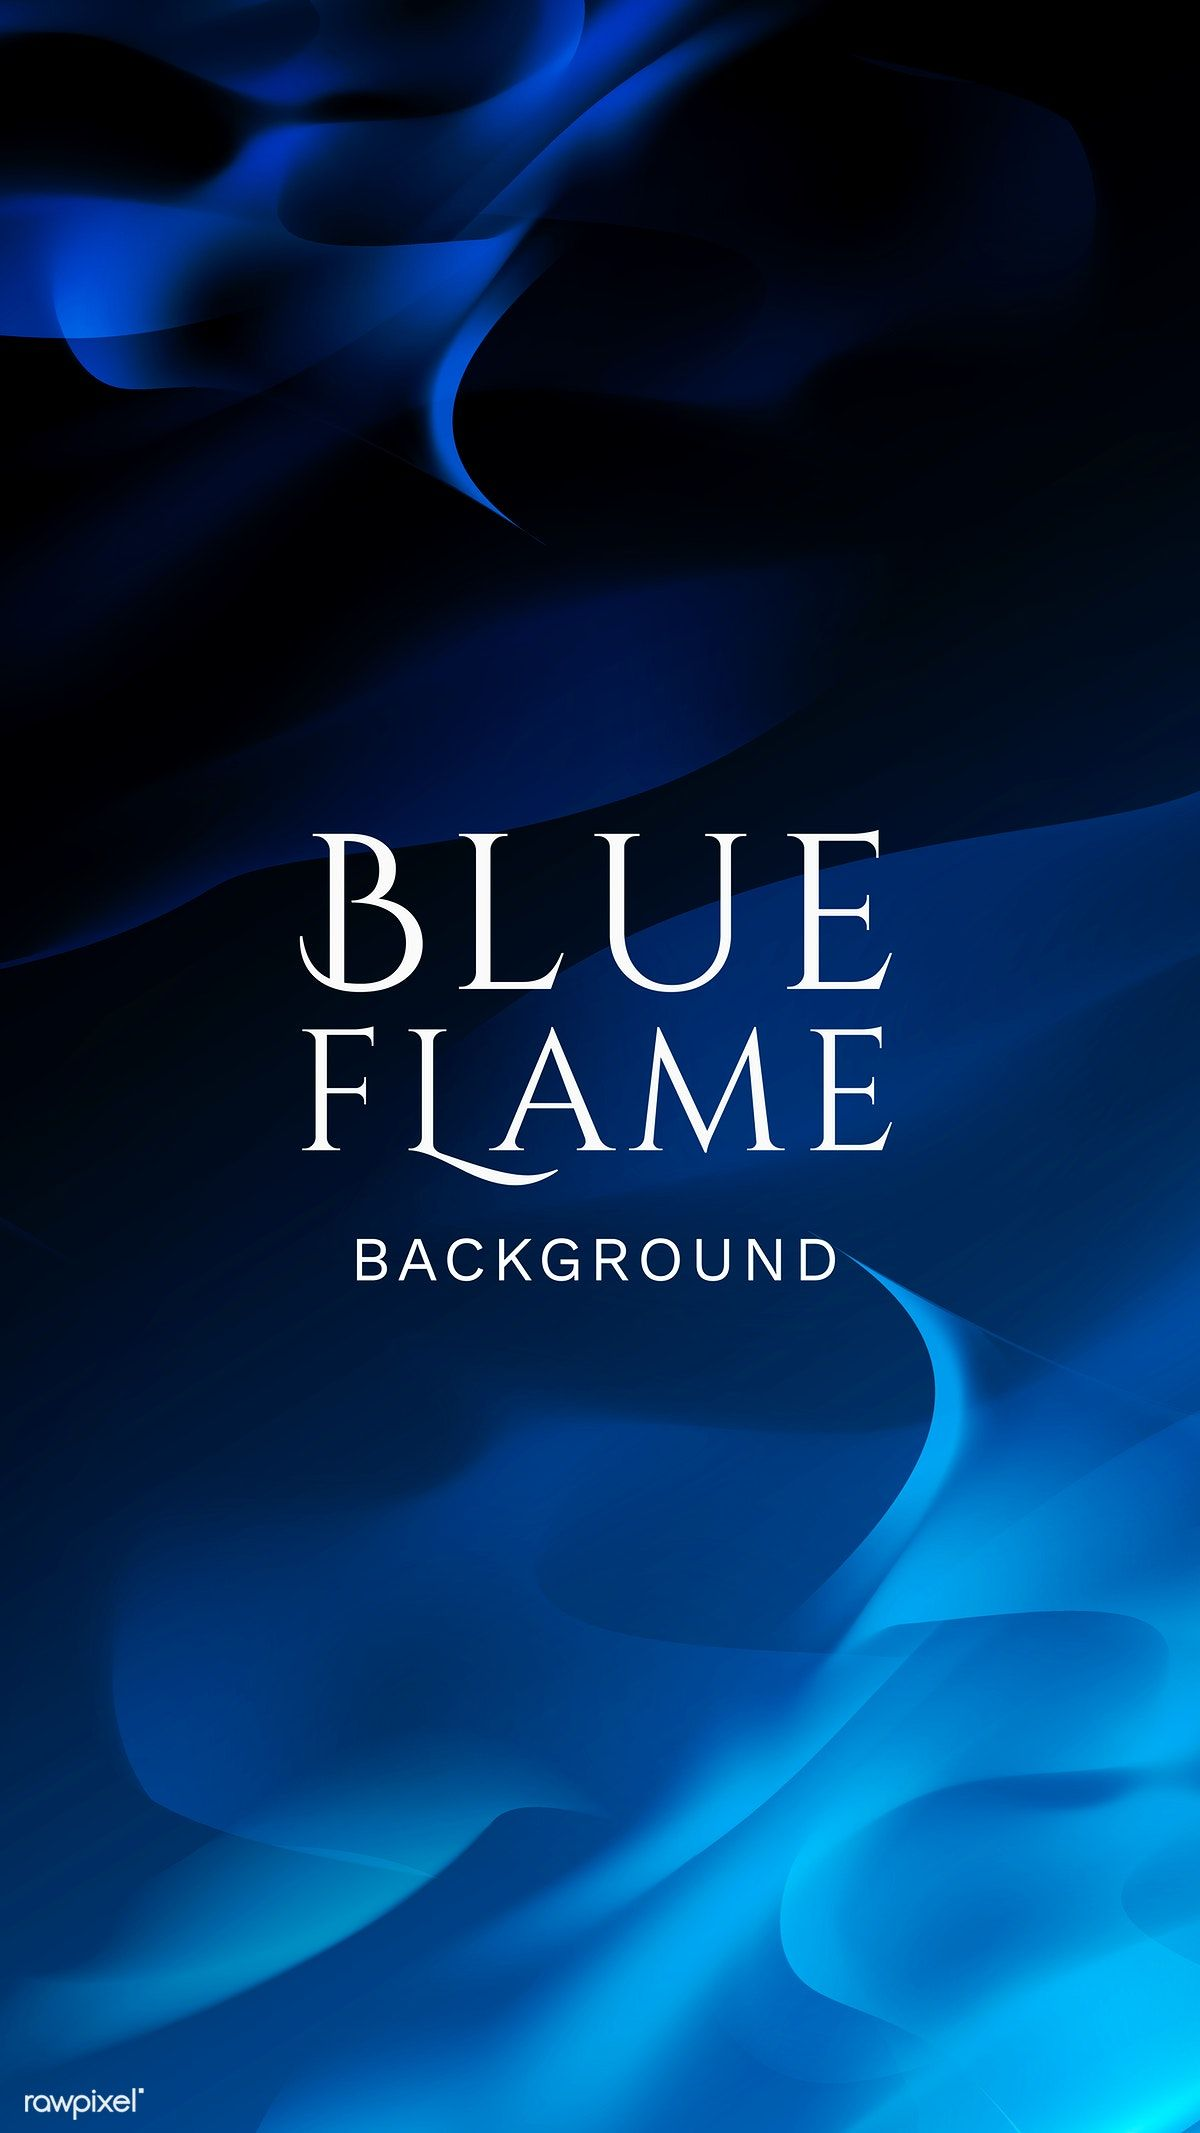 Blue blazing flame abstract background vector free image